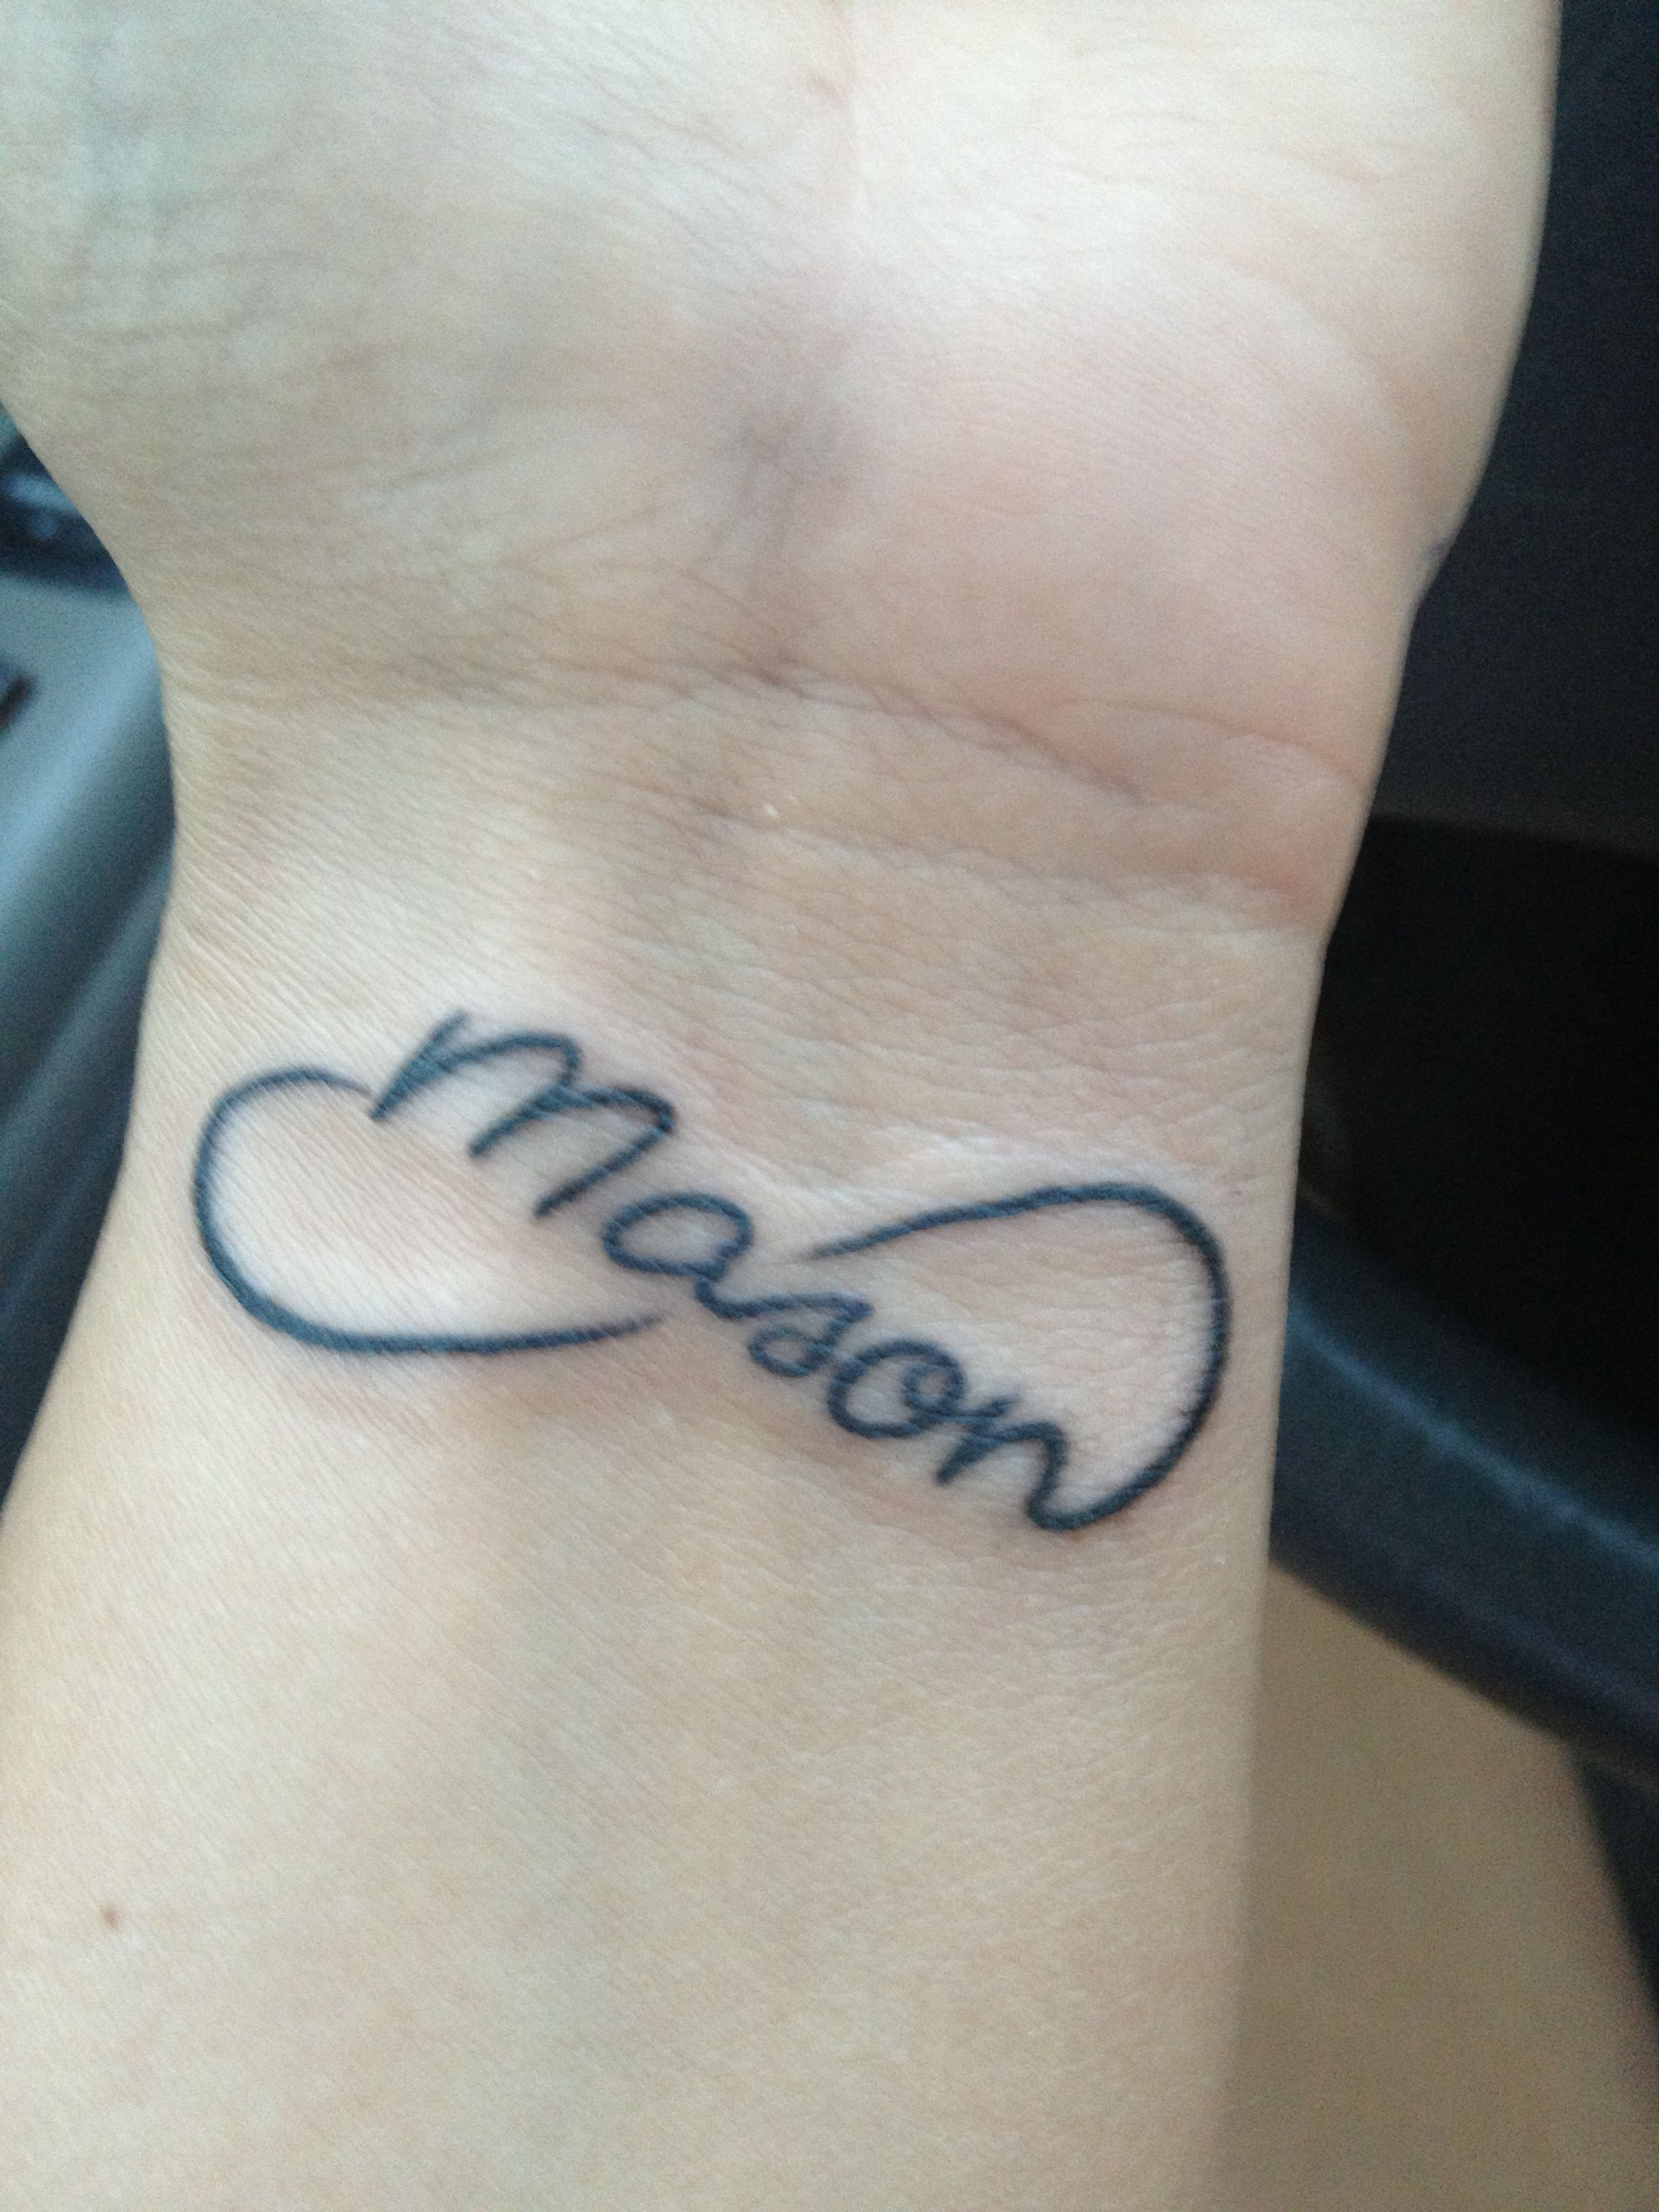 Infiniti Mason Tatoo I Want This But Instead With To Ibfinity And My Sis Matching With And Beyond Mother Tattoos Different Tattoos Tattoo Quotes